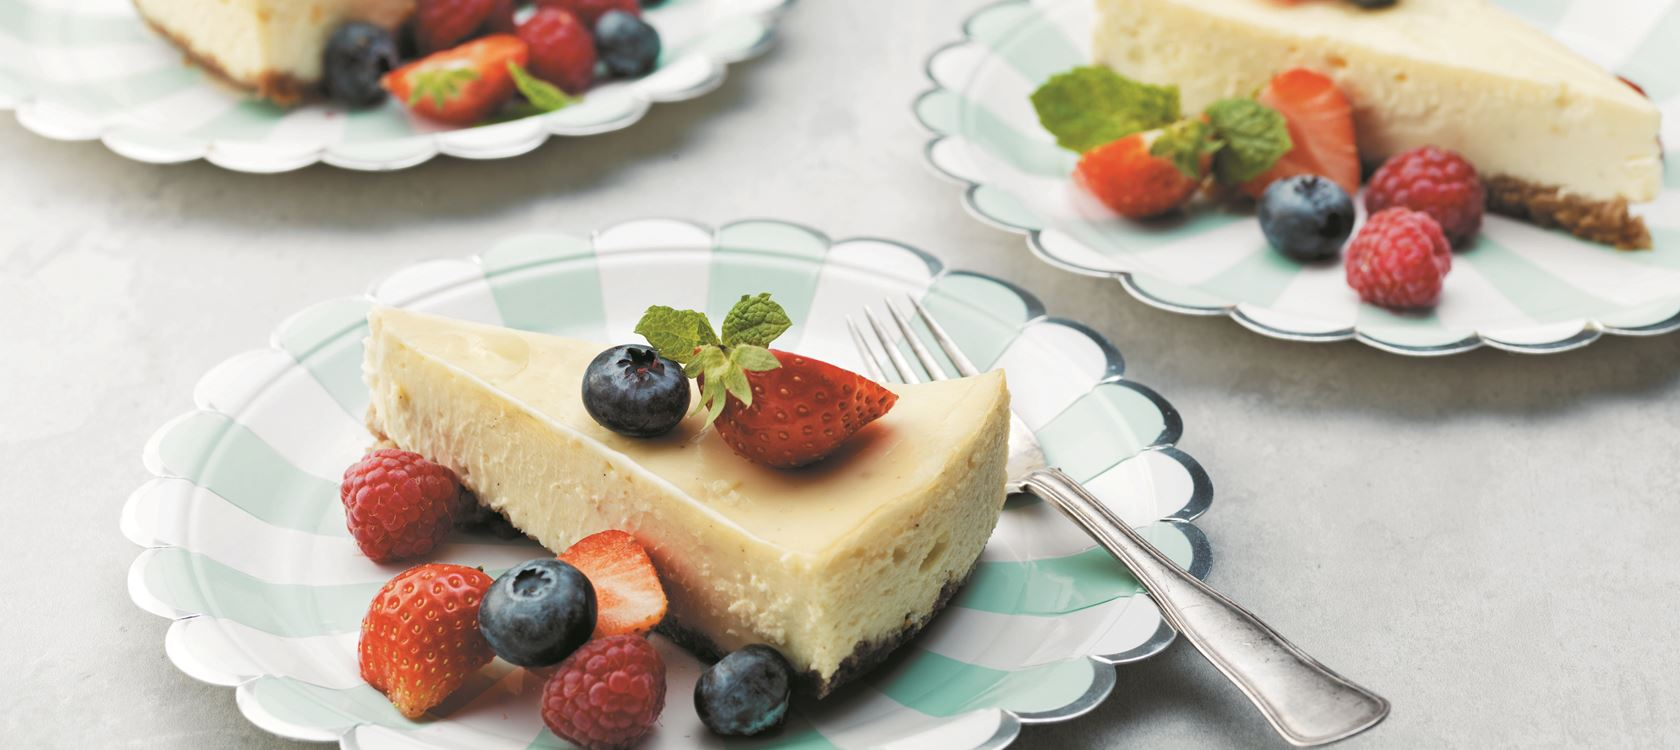 White Chocolate Cheesecake